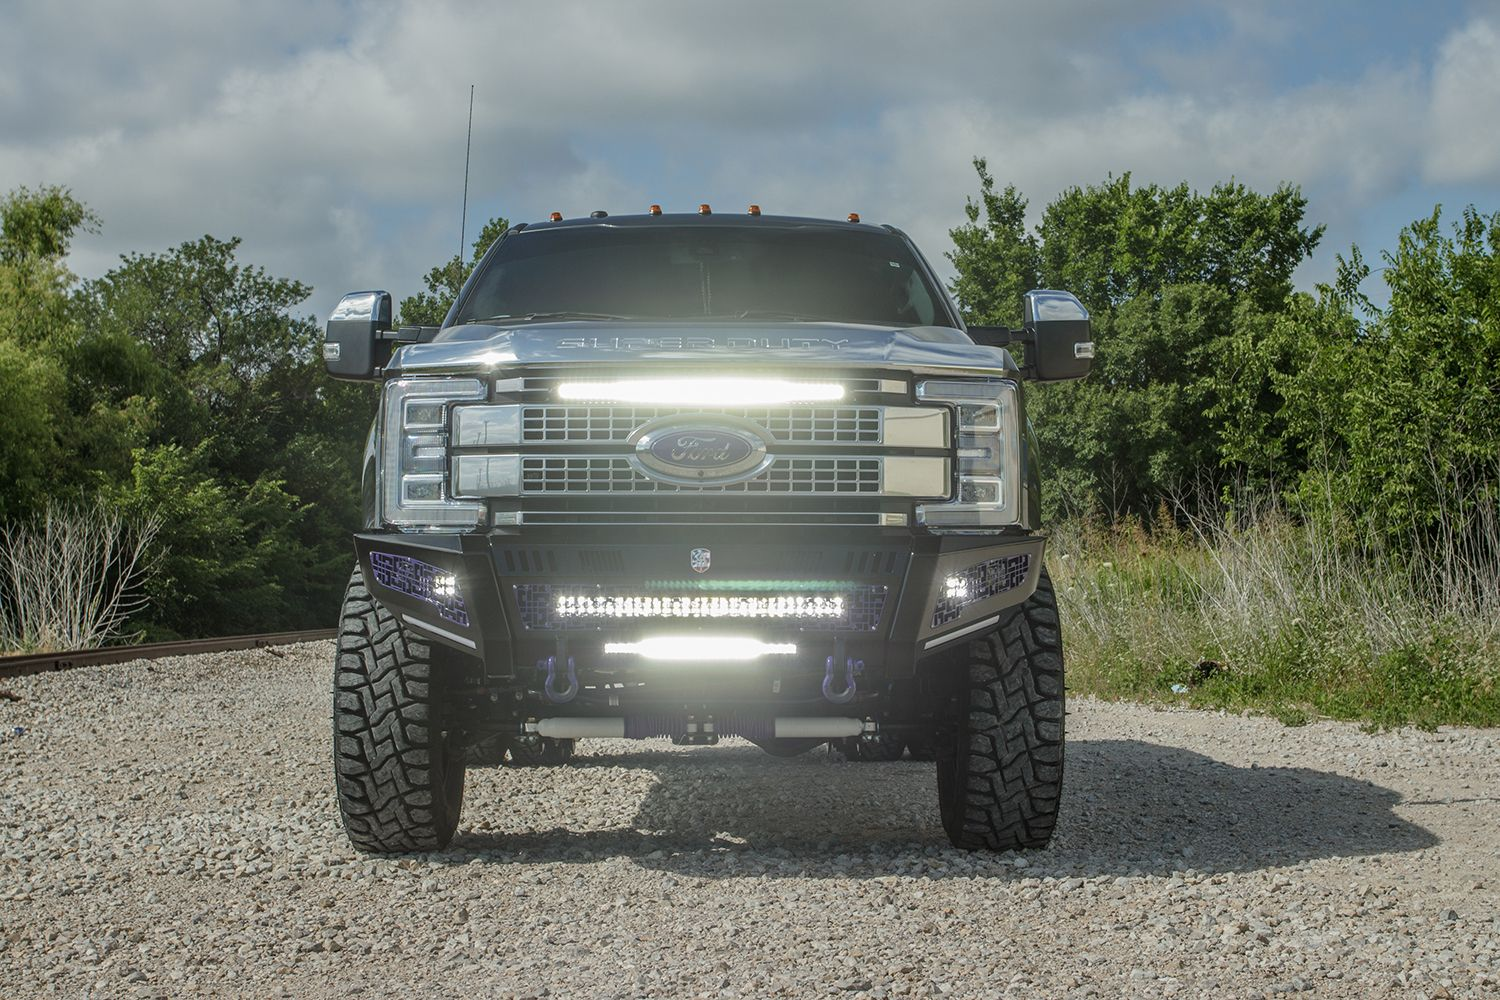 road armor identity bumpers on a lifted gray ford f350 dually with custom rigid led light bars [ 1500 x 1000 Pixel ]